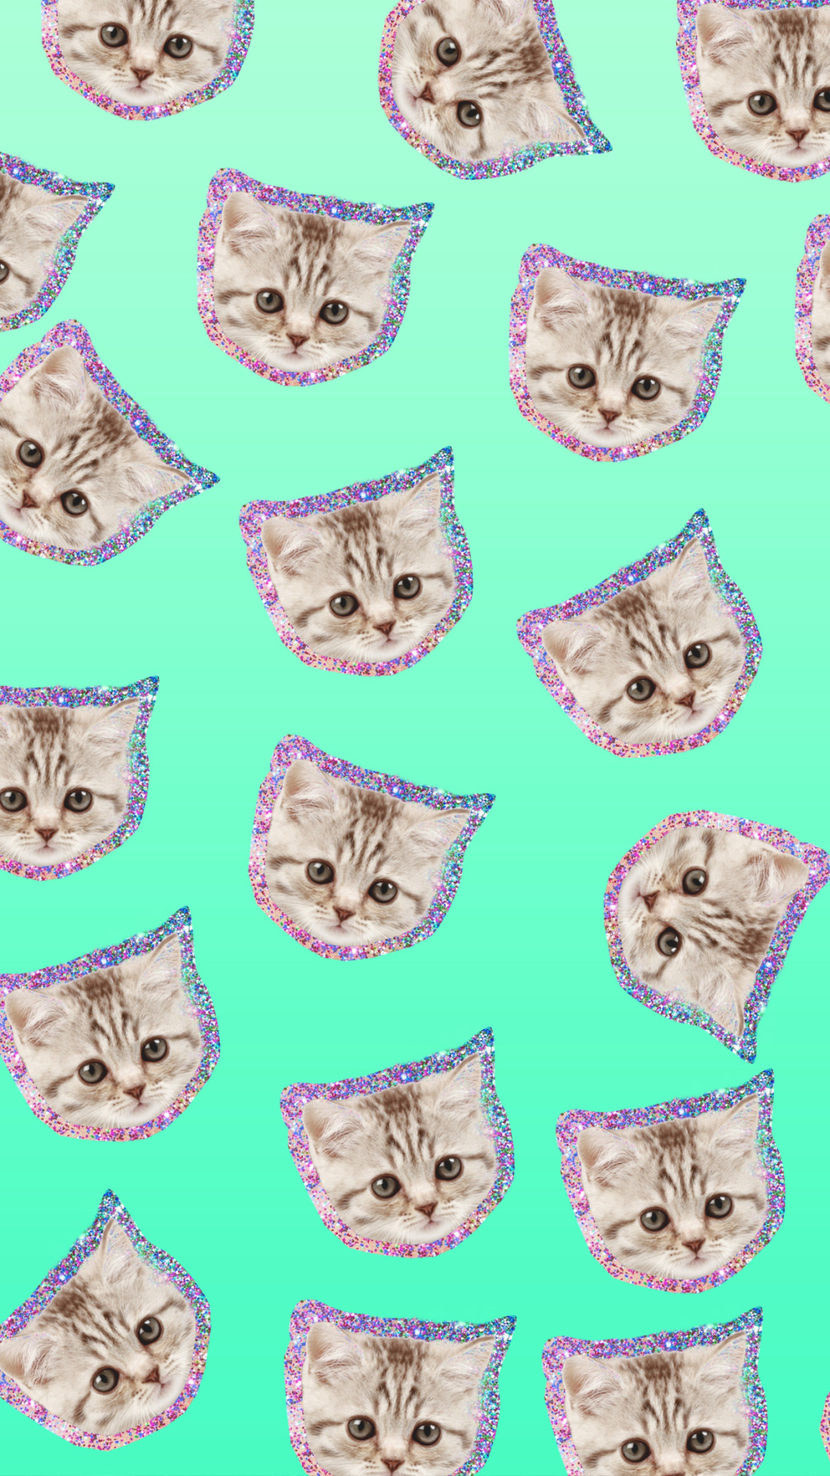 Glitter kittens wallpaper patterns pinterest wallpaper